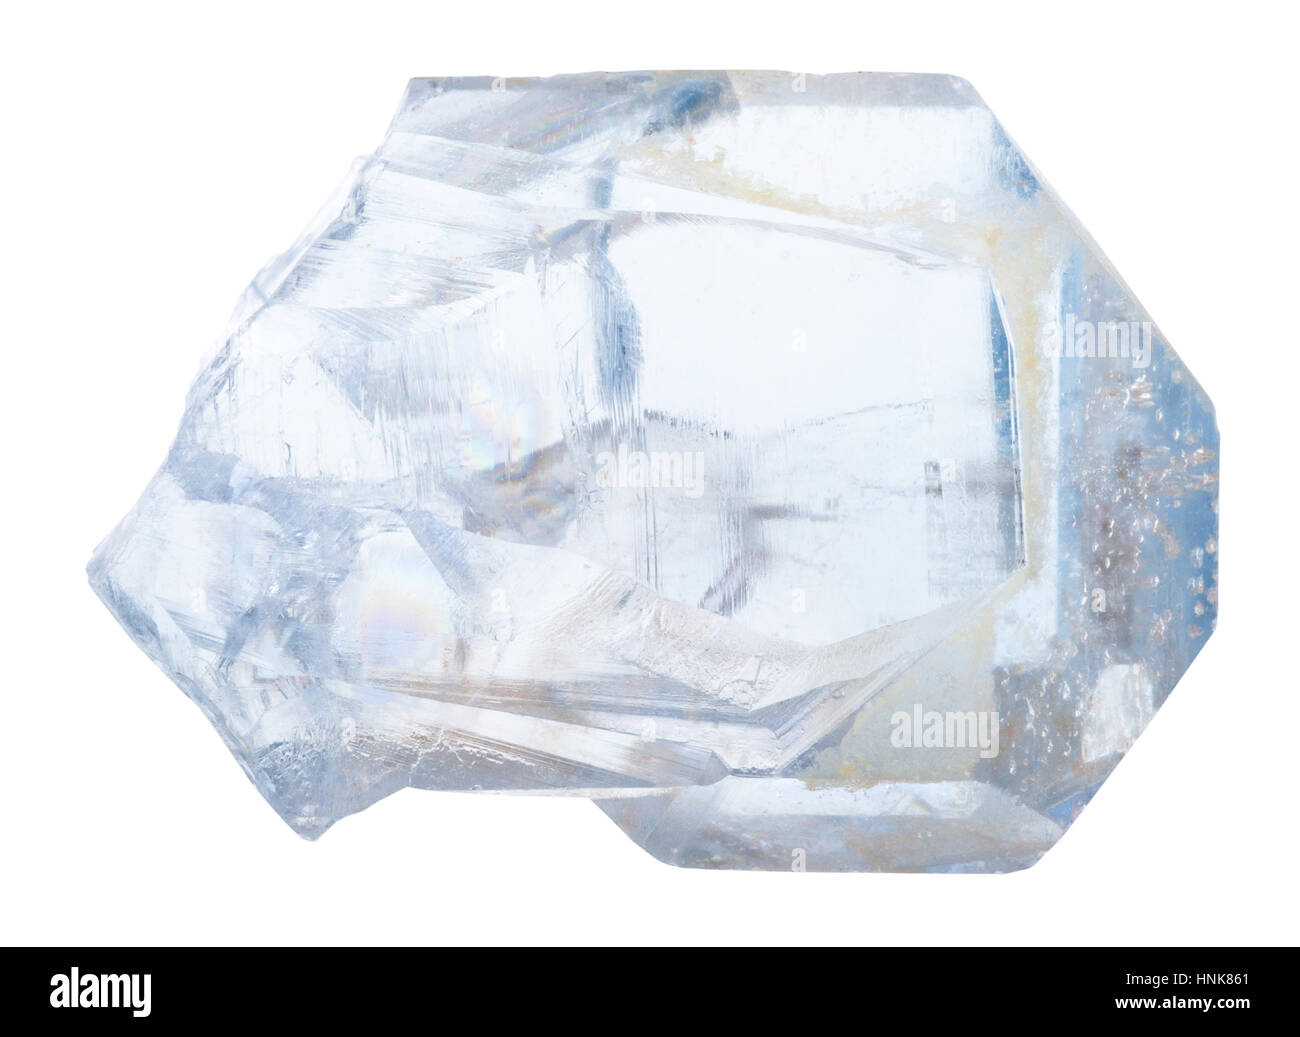 macro shooting of geological collection mineral - crystal of celestine stone isolated on white background - Stock Image